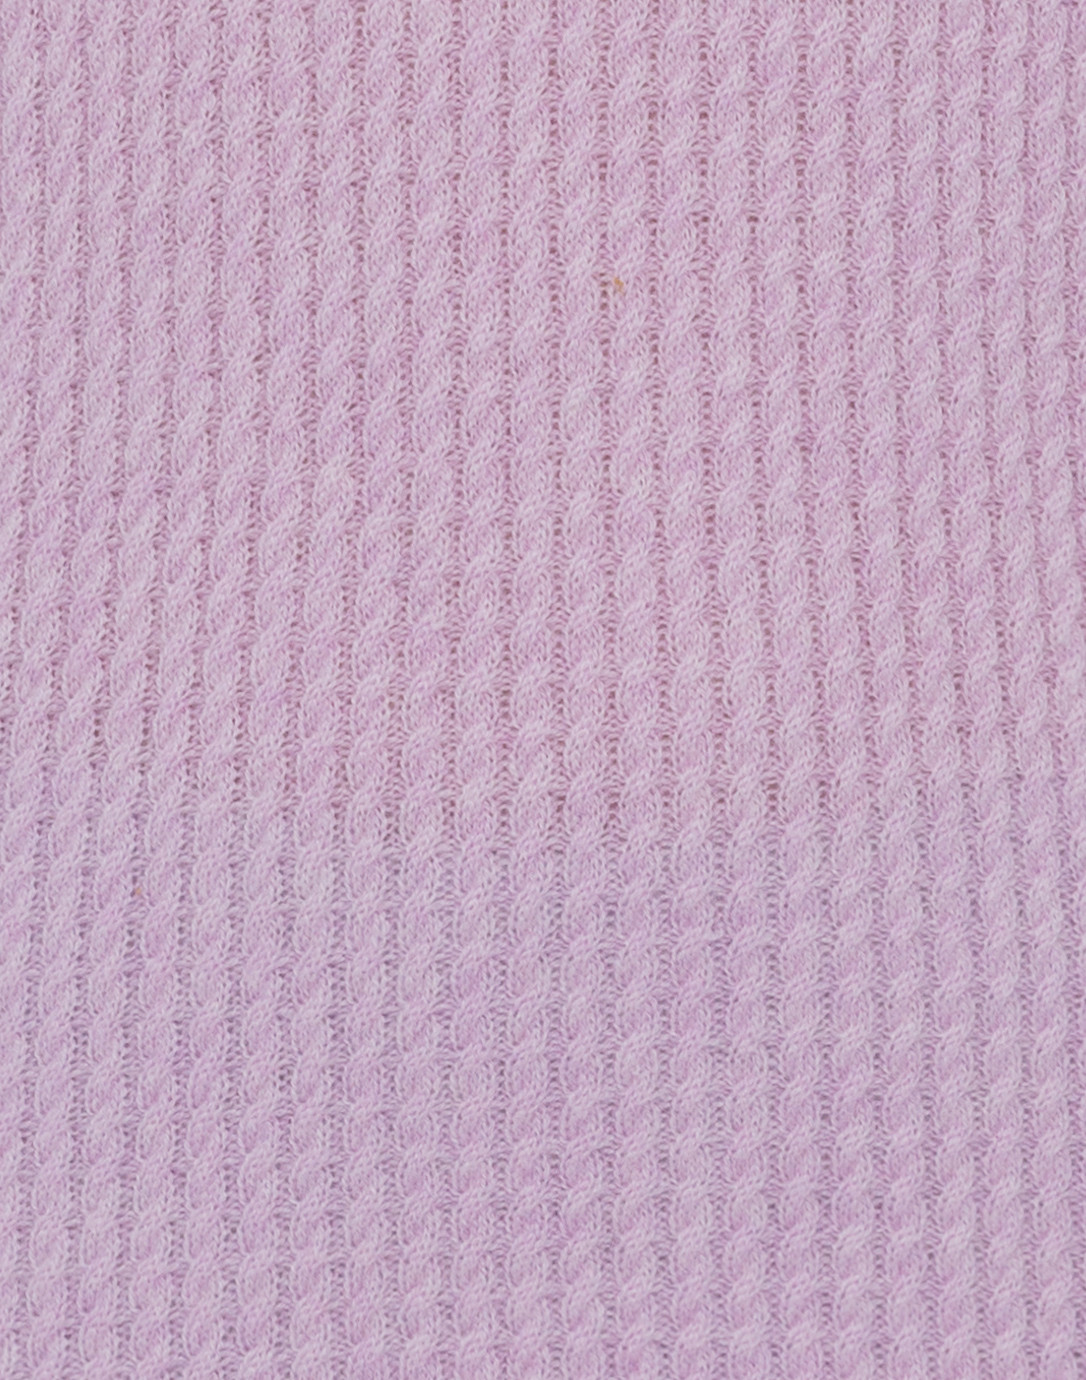 4a80bdee5d Lavender Micro Cable Knit Cashmere Sweater.  285 20% Off  Code FF2019